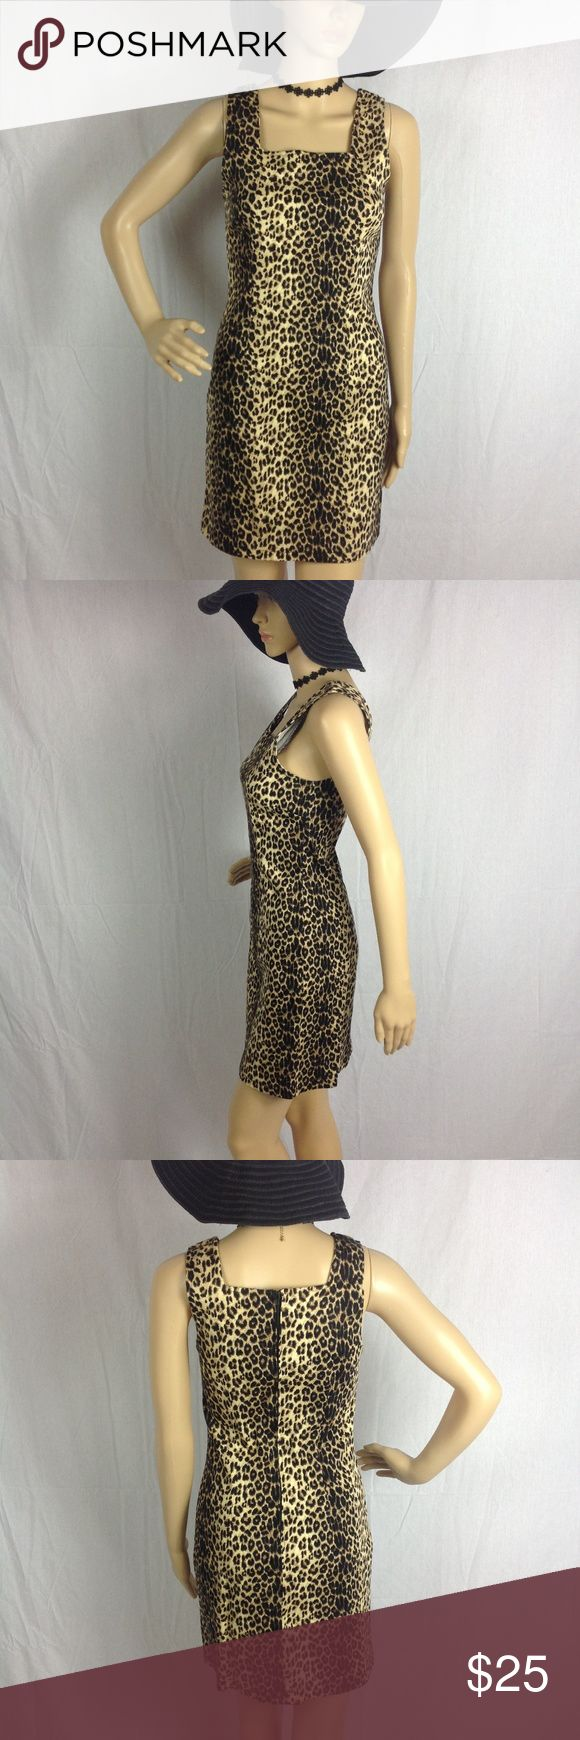 Vintage Blue Black Brown Leopard Print Mini Dress This dress is a thick stretchy bodycon like material. The material is a cotton spandex blend. No major flaws or wear to note. Please see all pictures. As always offers and bundles are welcome. Feel free to add one or more items to a bundle for a private discount offer!!!  Armpit to armpit is 15.25 inches across Waist is 13.5 inches across Hips are 15.75 inches across. Length is 32.75 inches. Vintage Blue Dresses Mini